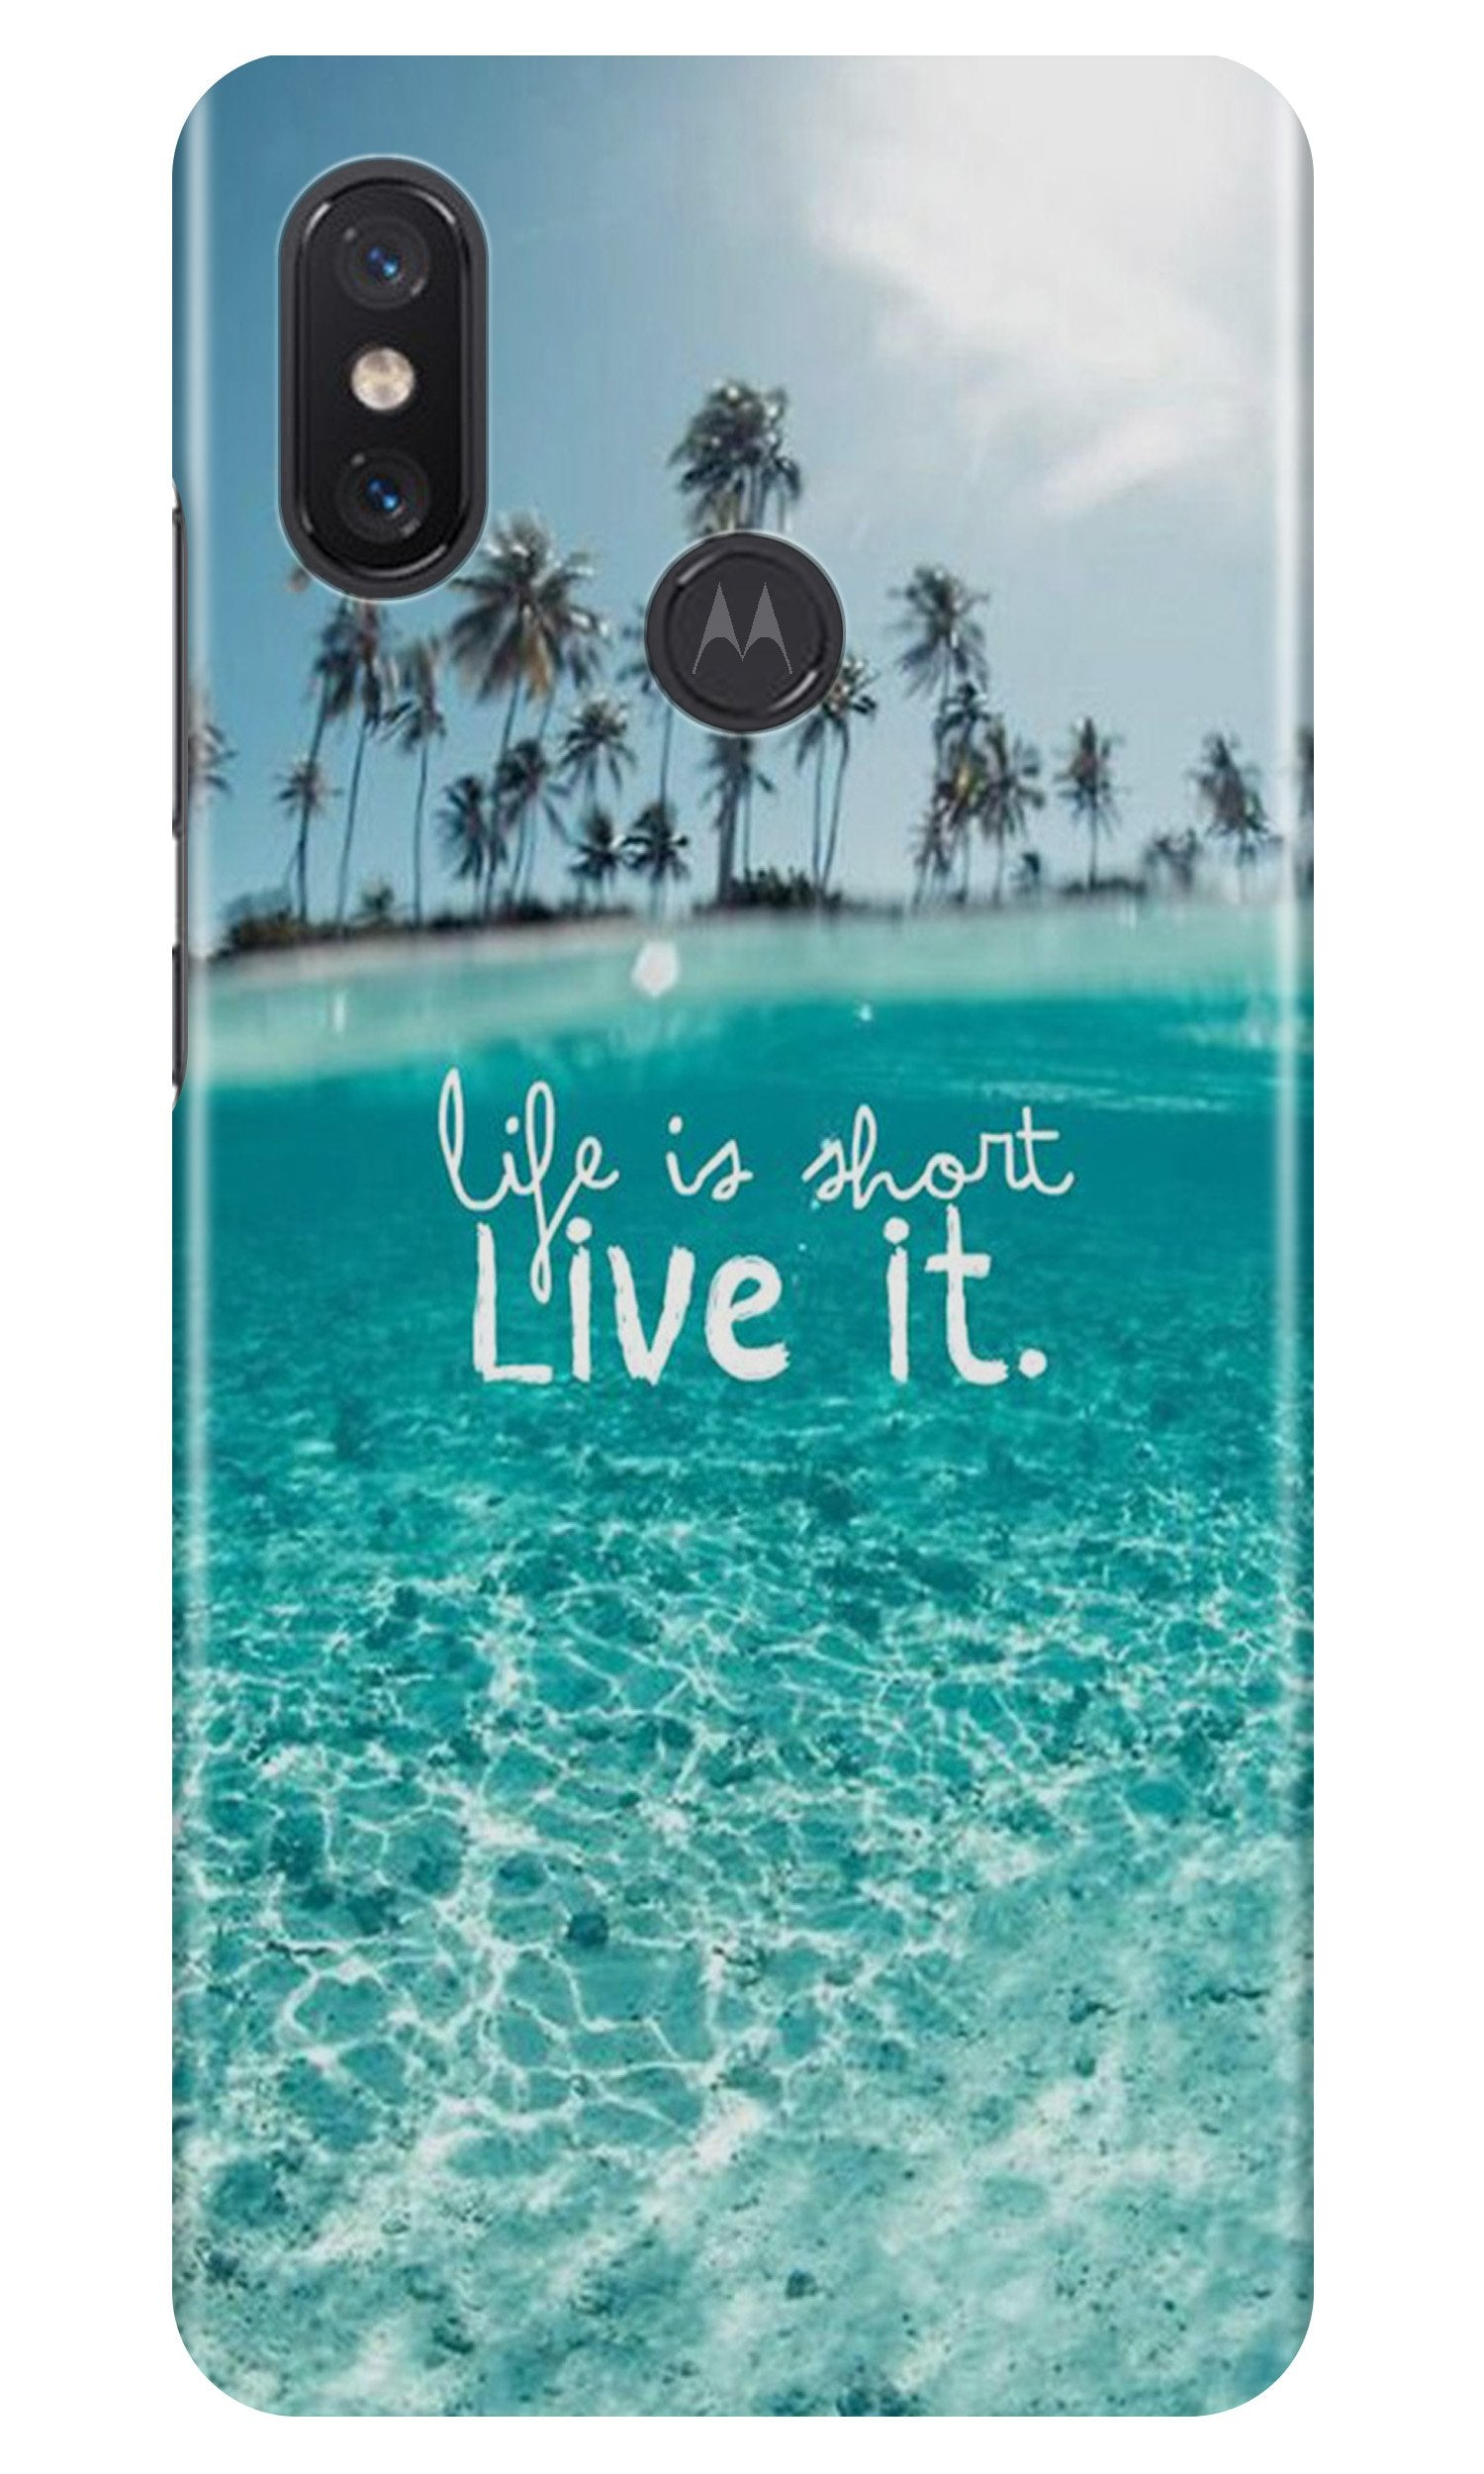 Life is short live it Case for Moto One Power